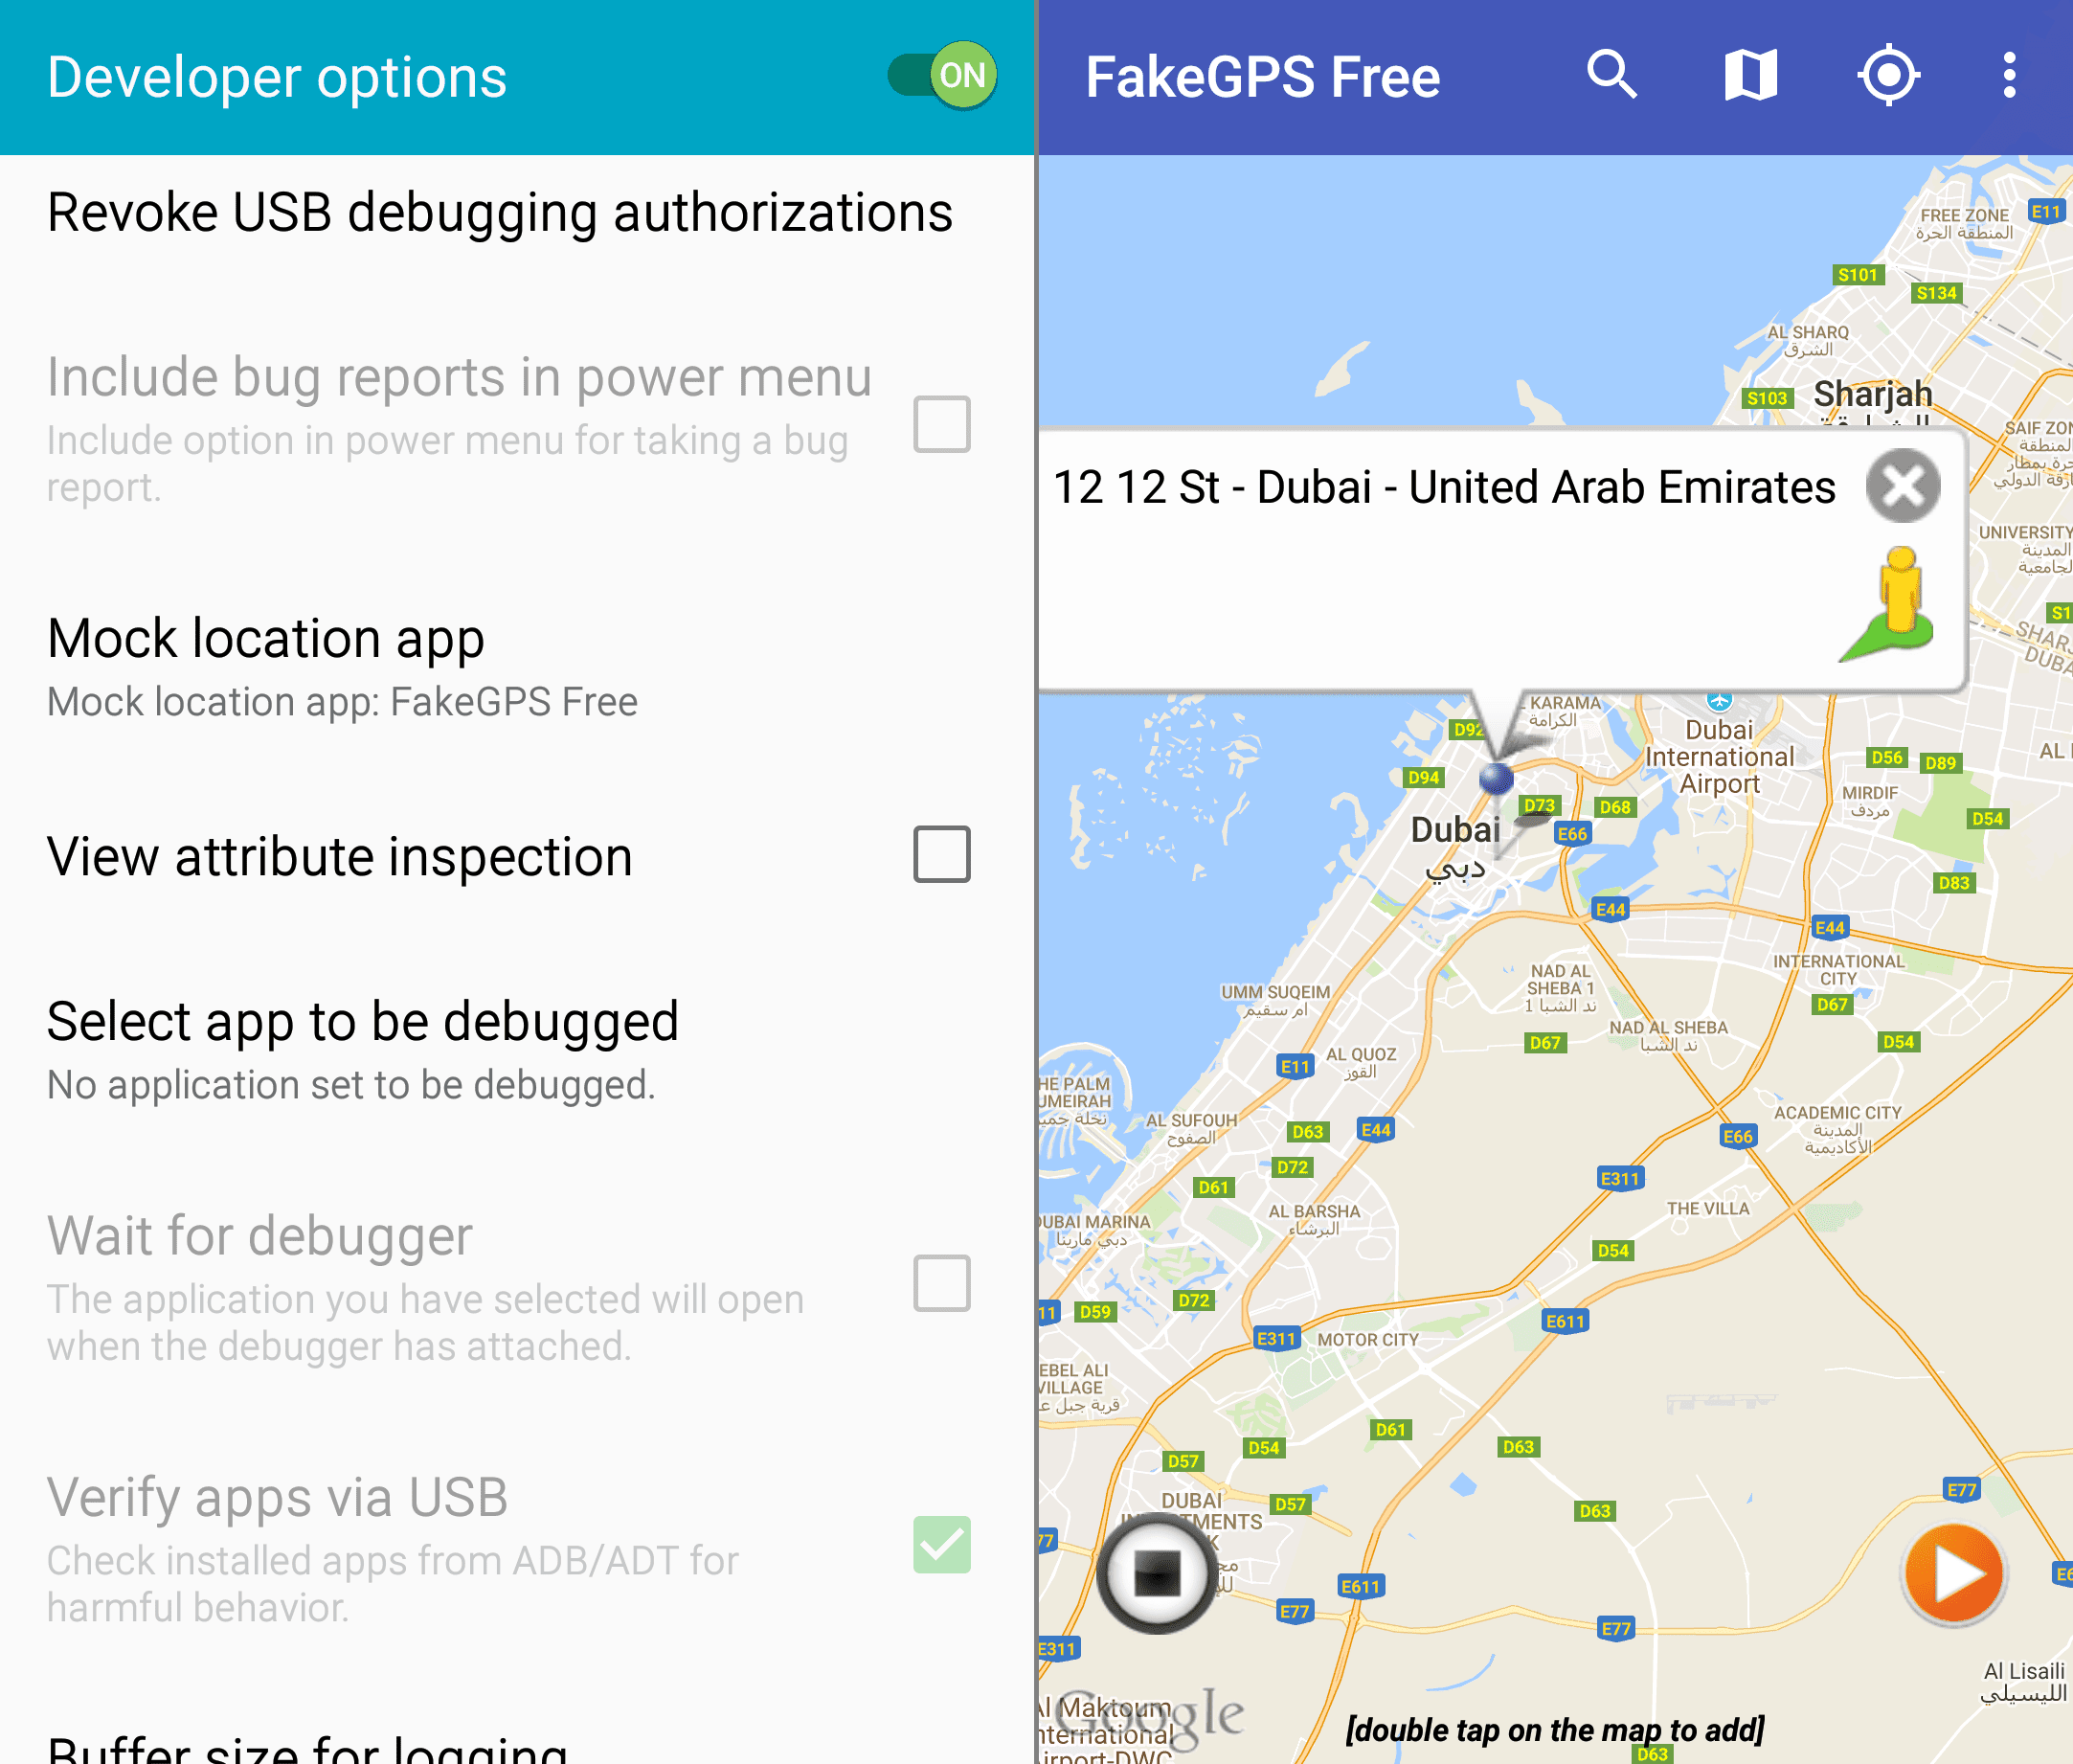 Screenshots of the FakeGPS Free Android app